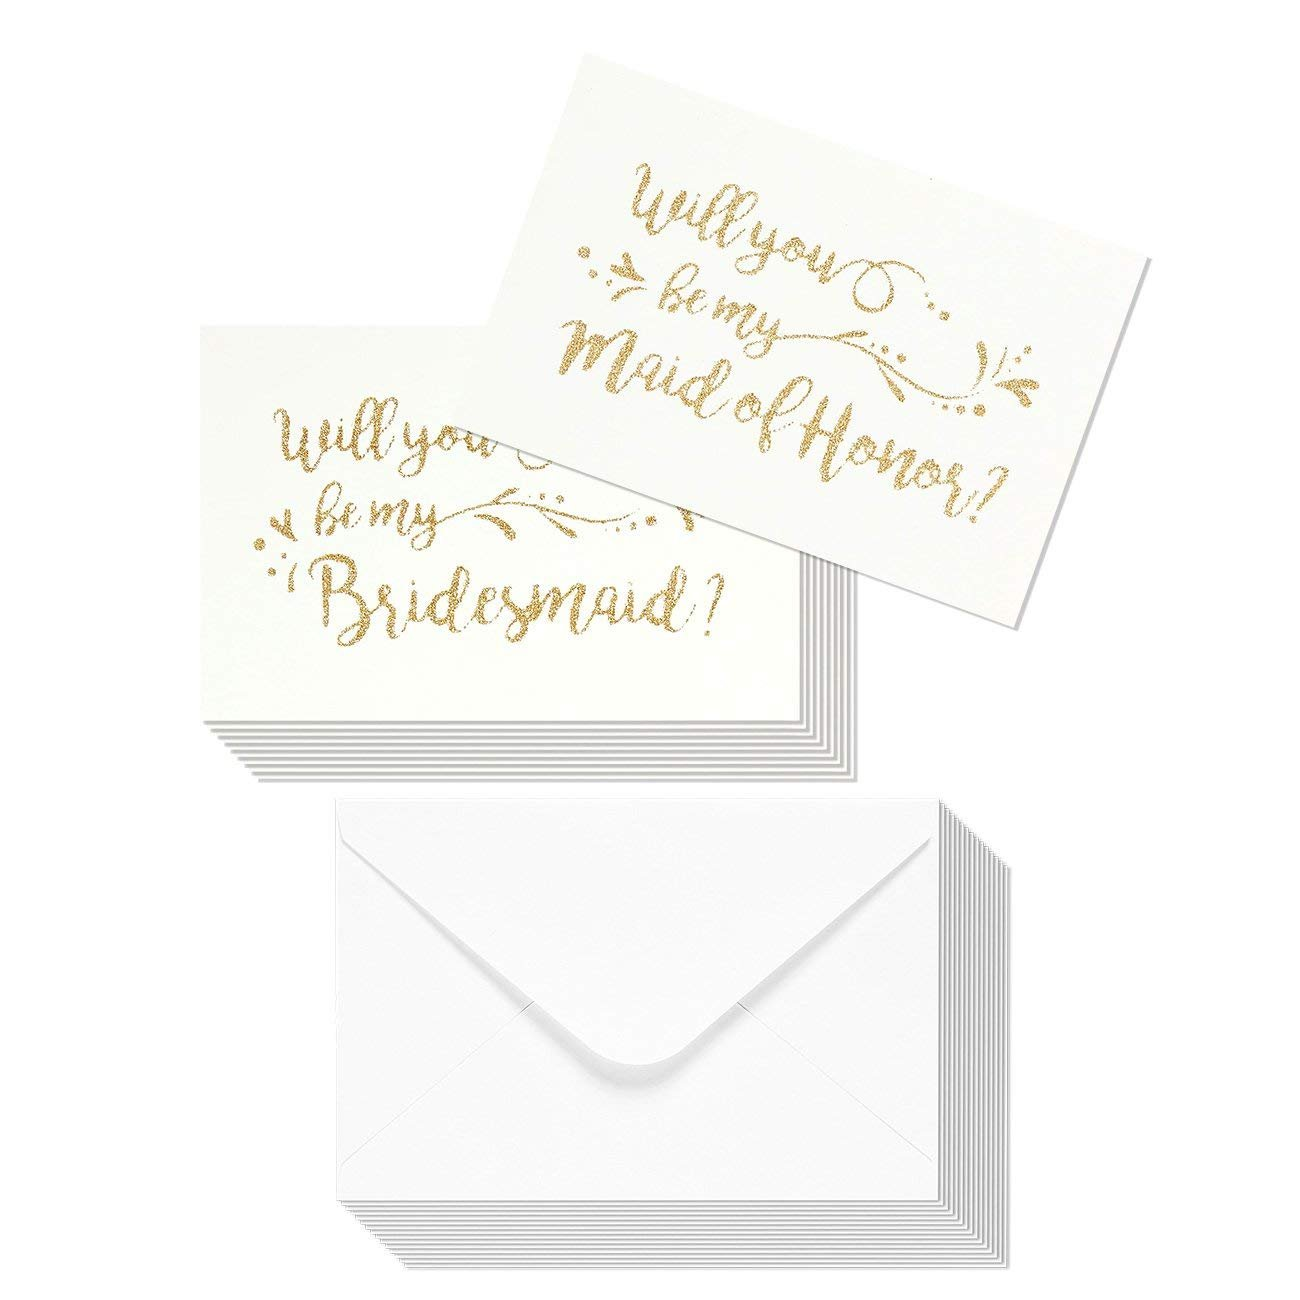 12-Pack Bridesmaid Cards - Bridesmaid Proposal Set for Weddings, Bridal Showers, Maid of Honor Invitations with Envelopes, White with Gold Glitter Lettering, 2 Designs, 4 x 6 inches